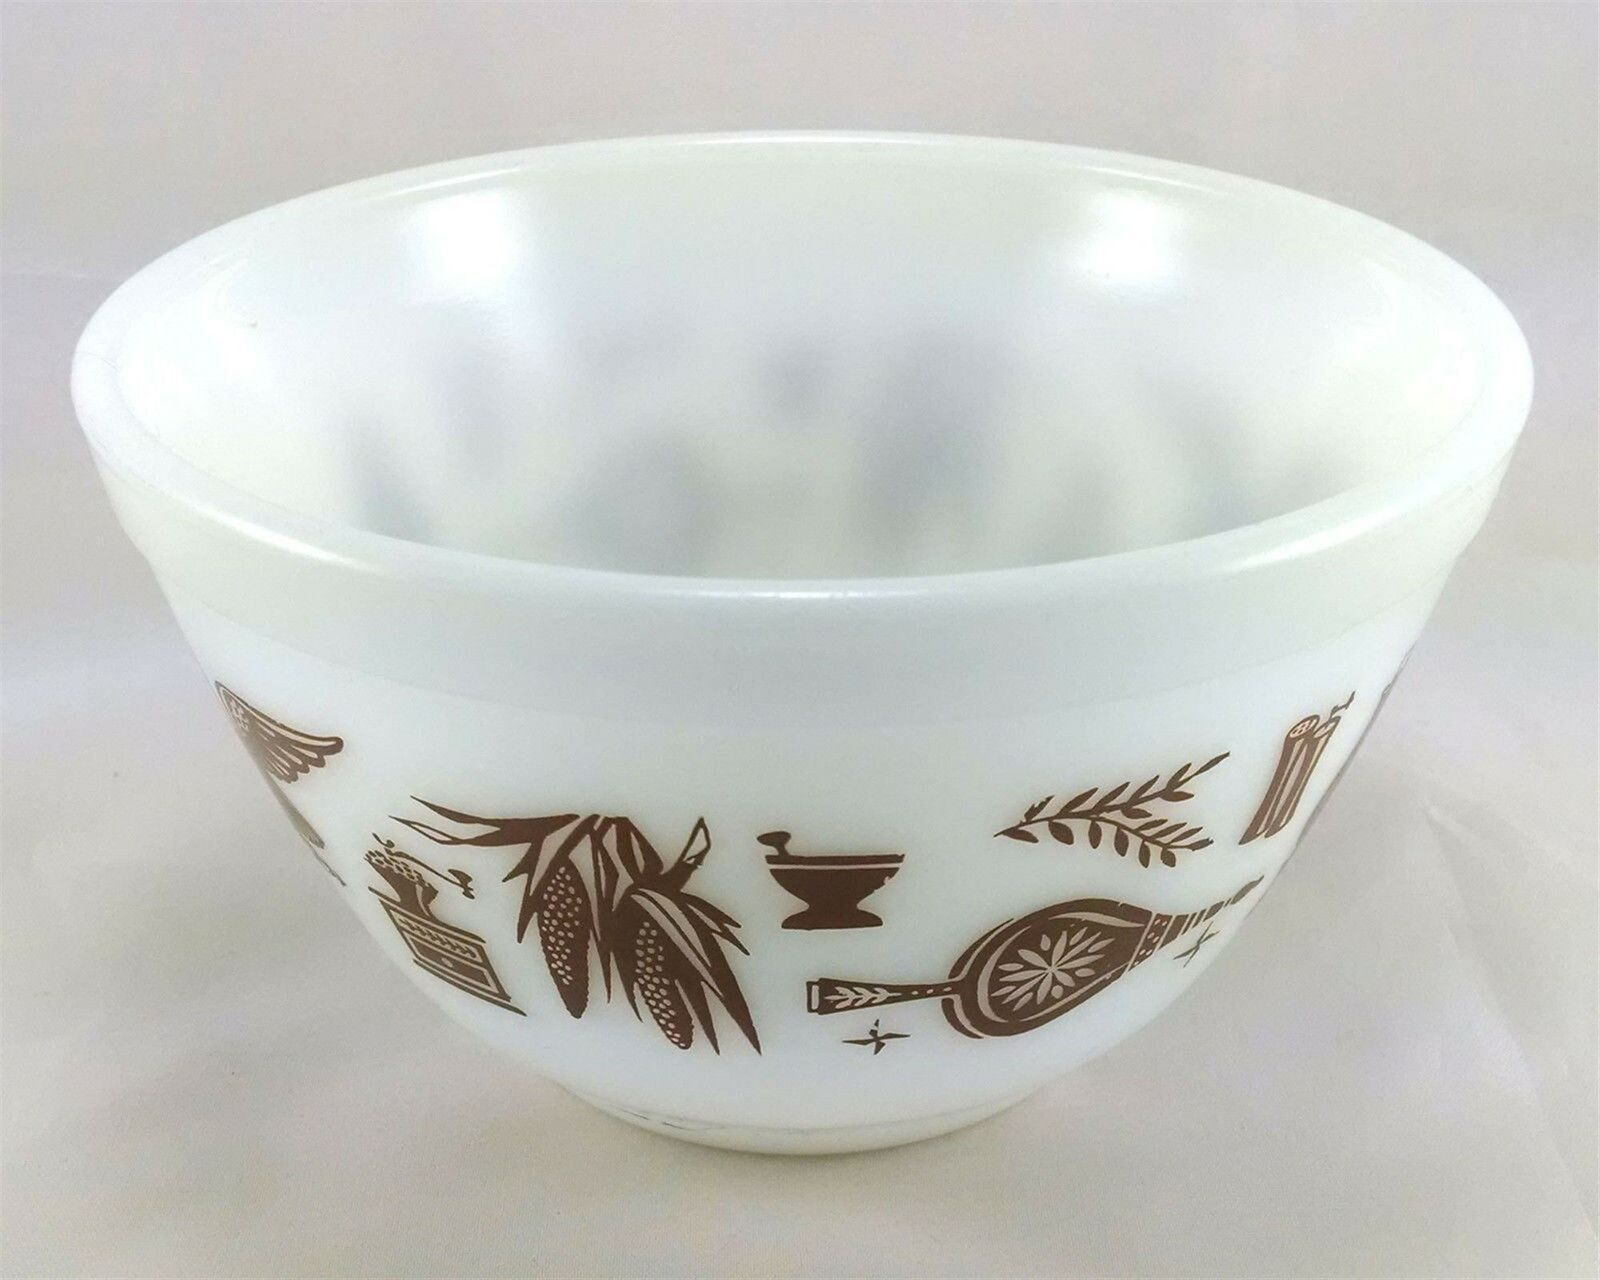 Pyrex 401 Americana 1 1/2 Pint Vintage Serving Mixing Bowl image 1